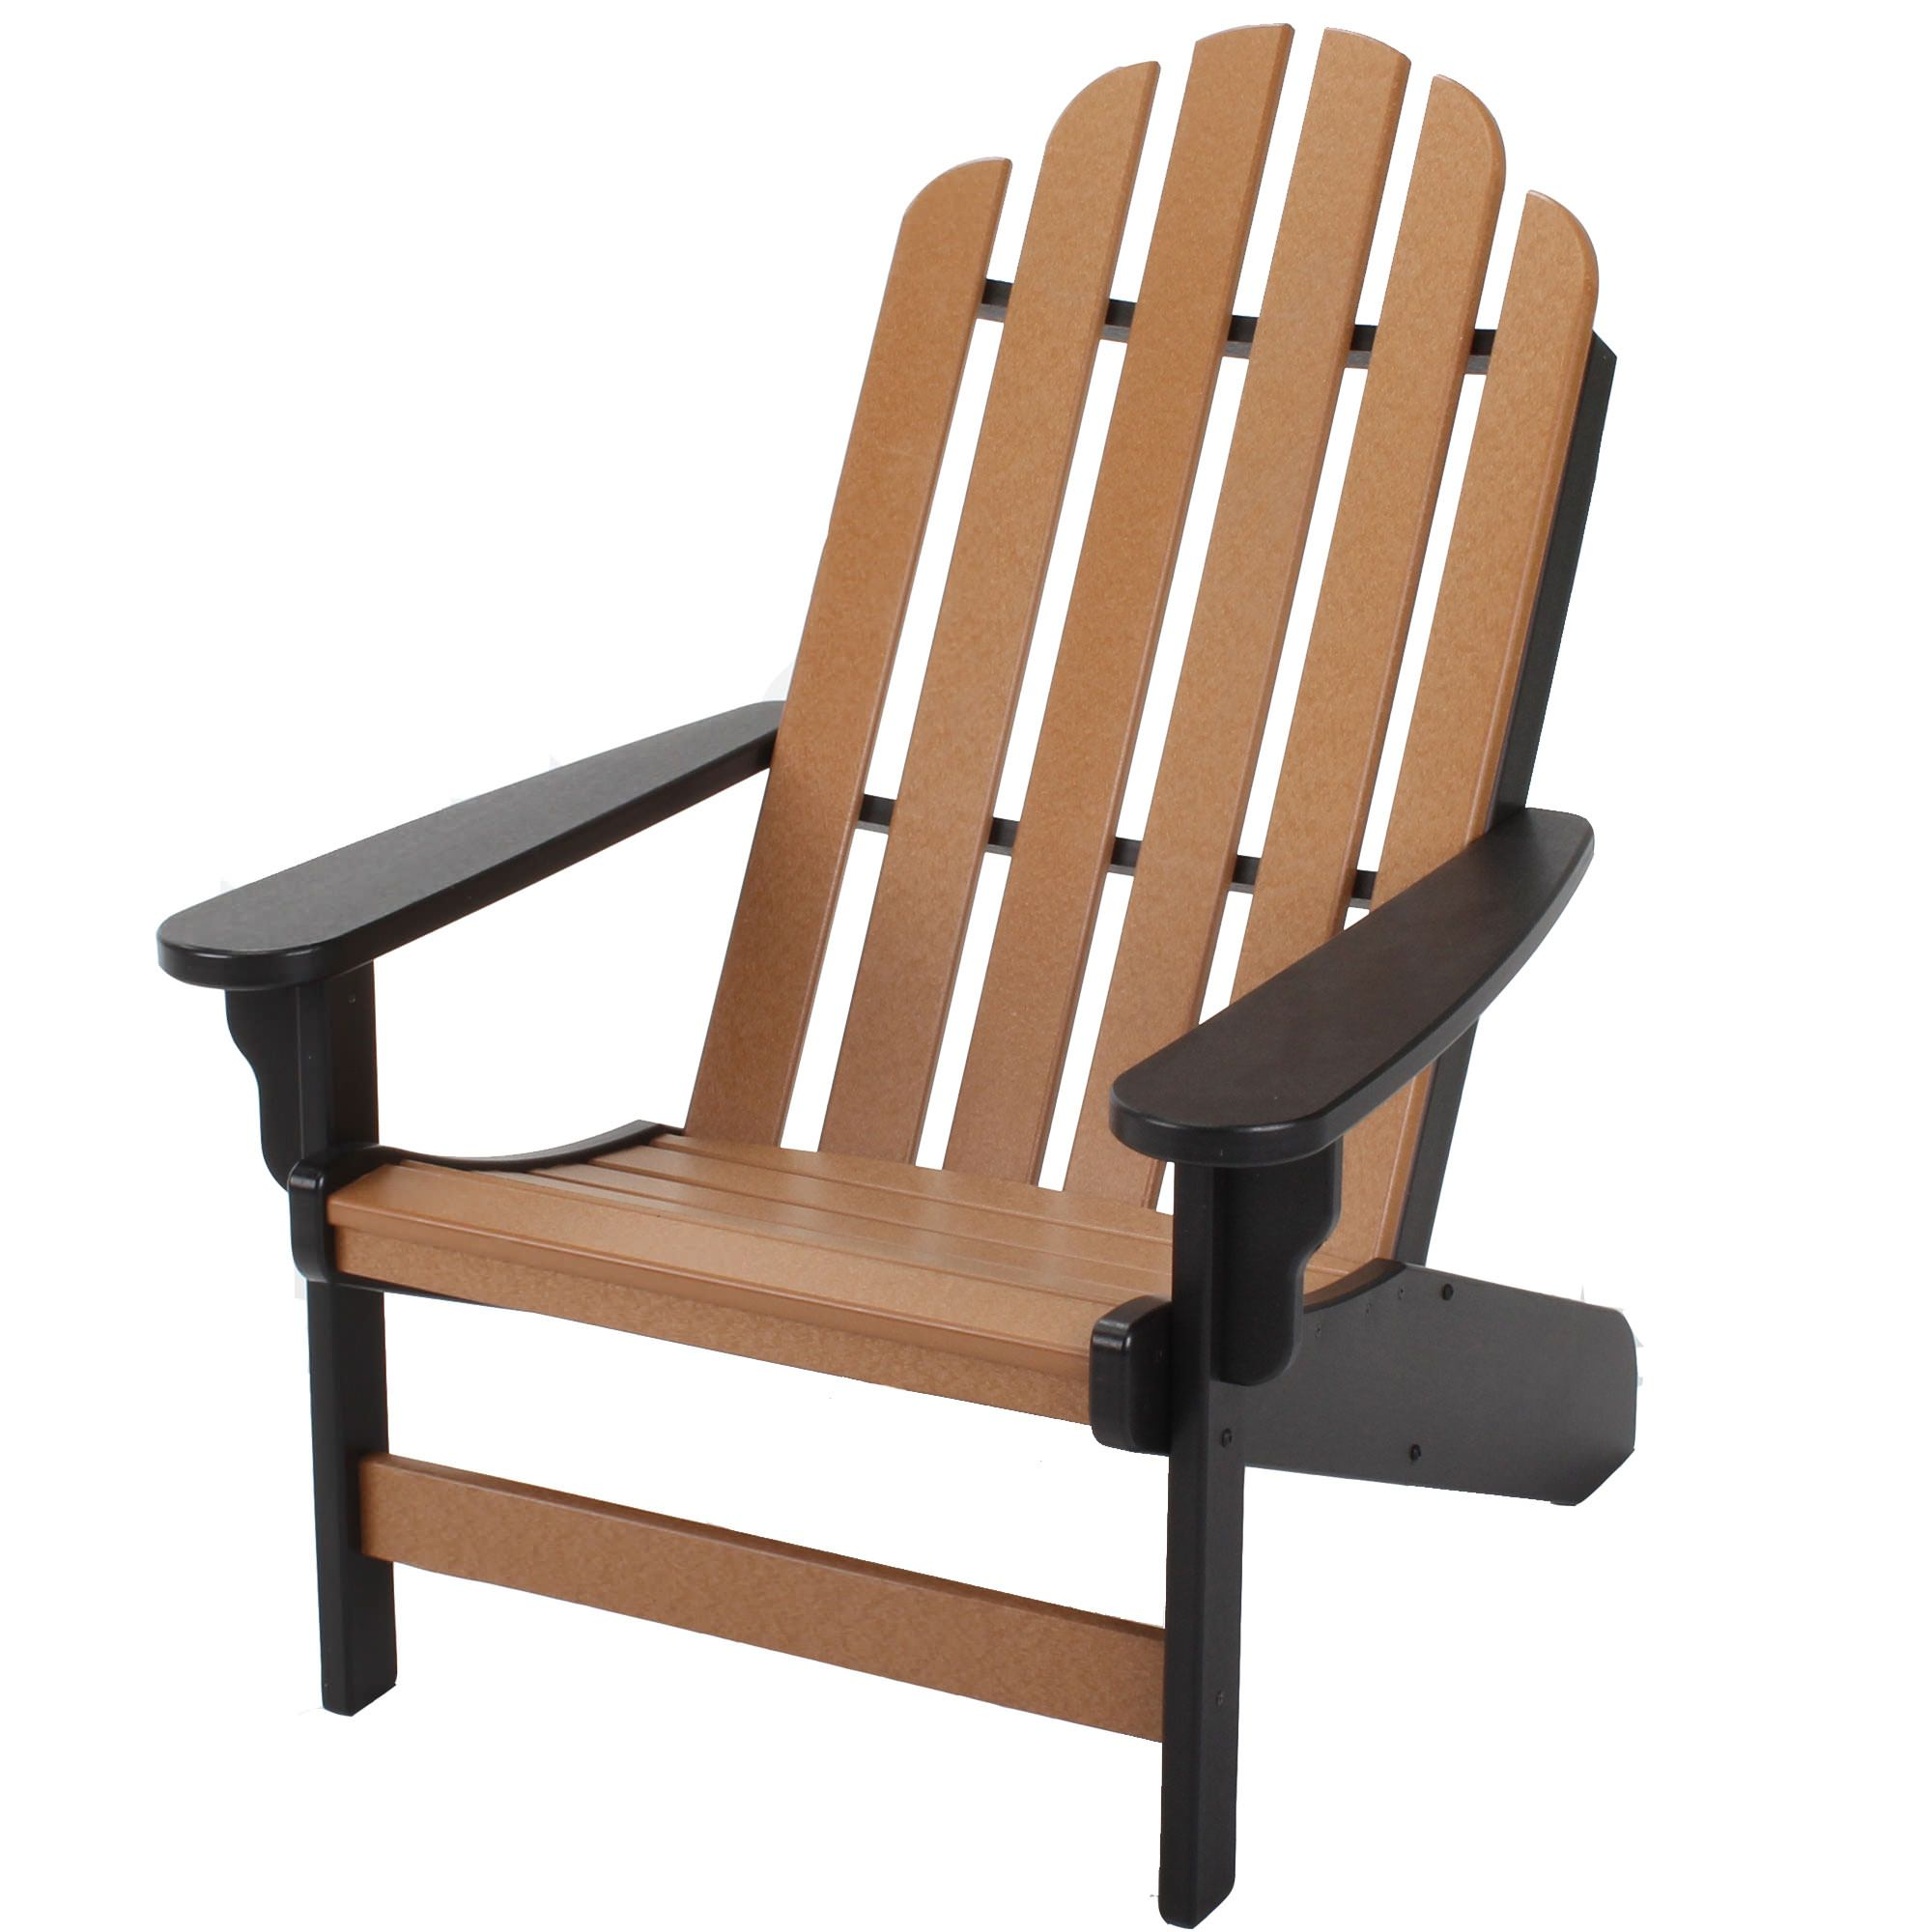 Charmant ... Essentials Adirondack Chair ...